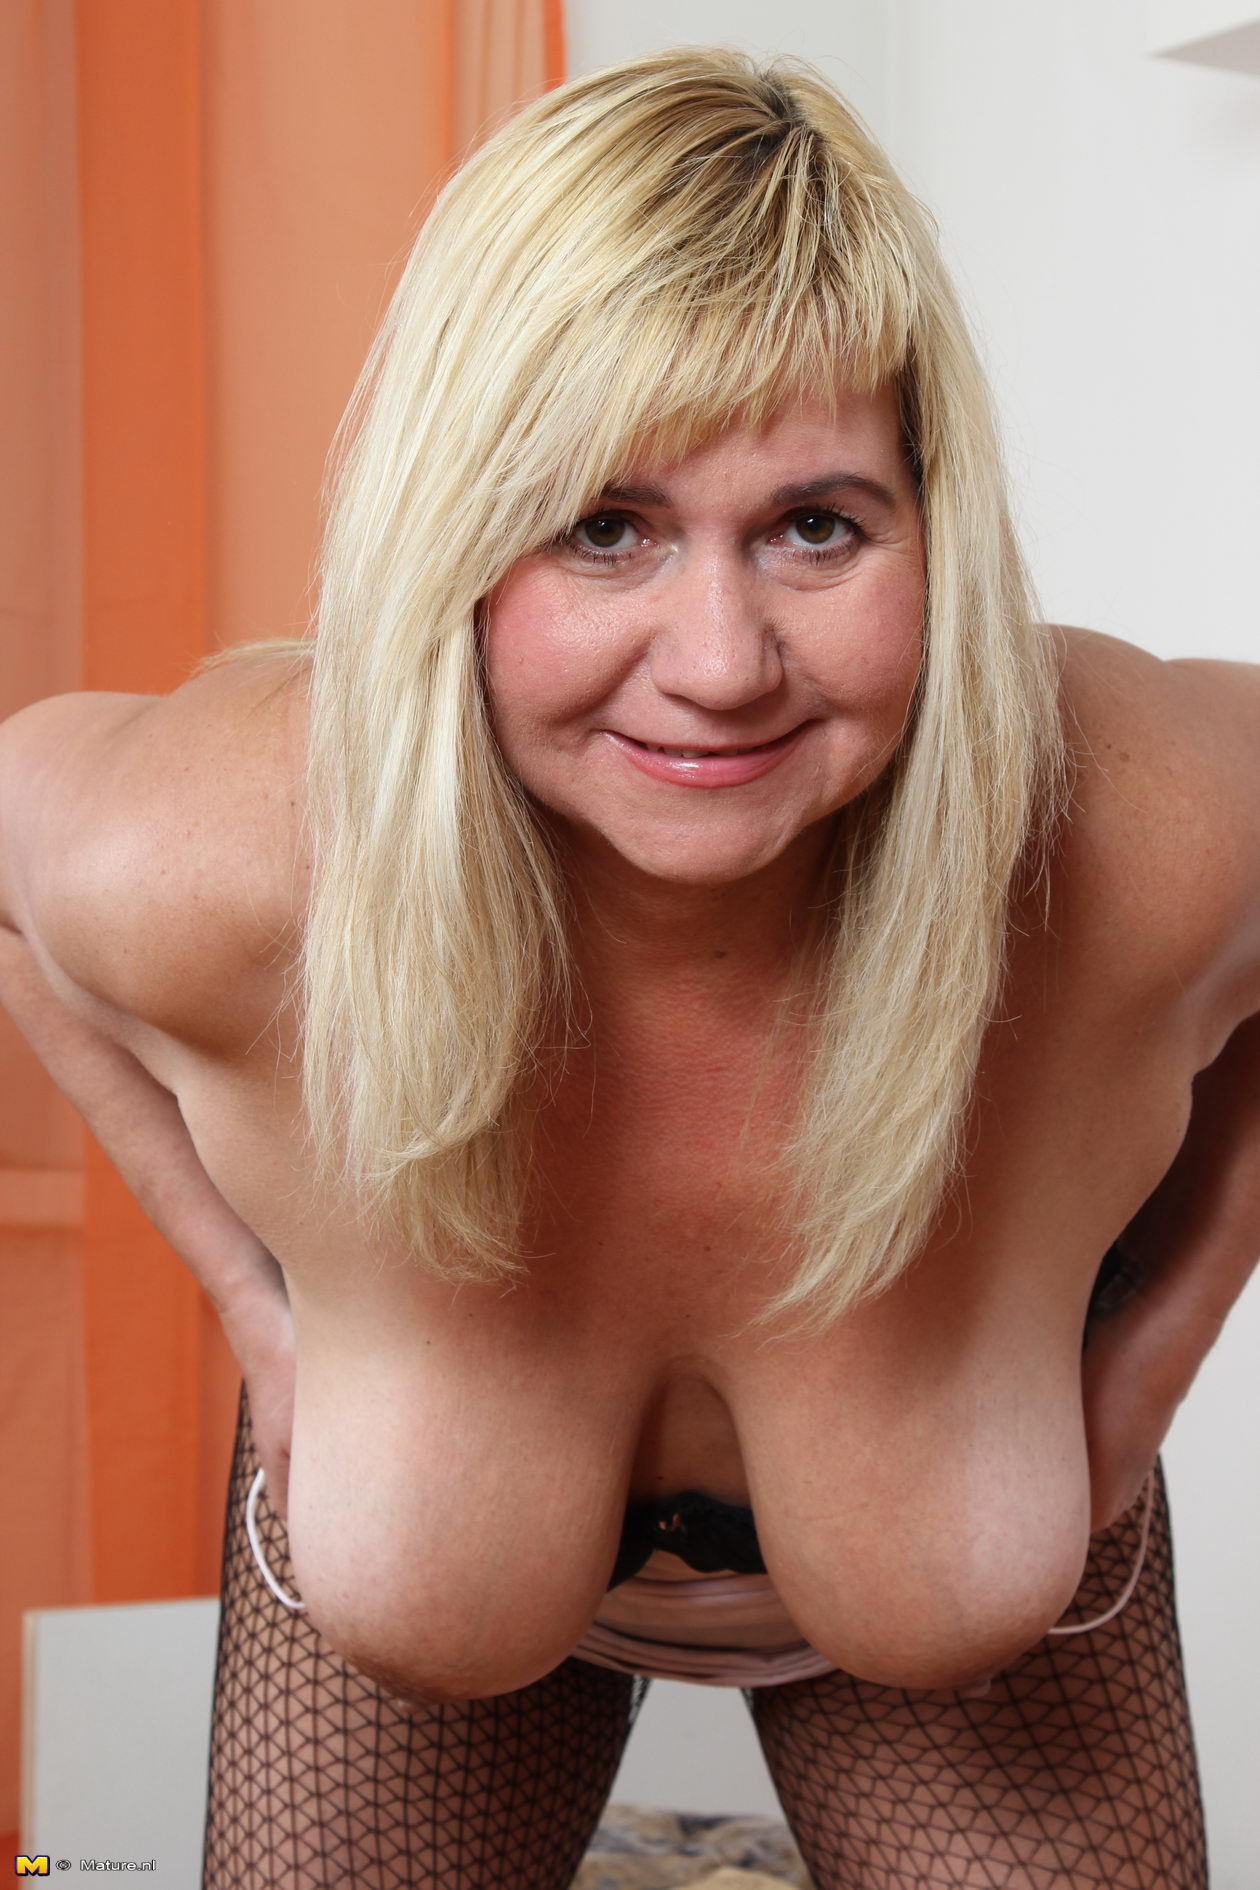 Beautiful big breasted mature women impossible